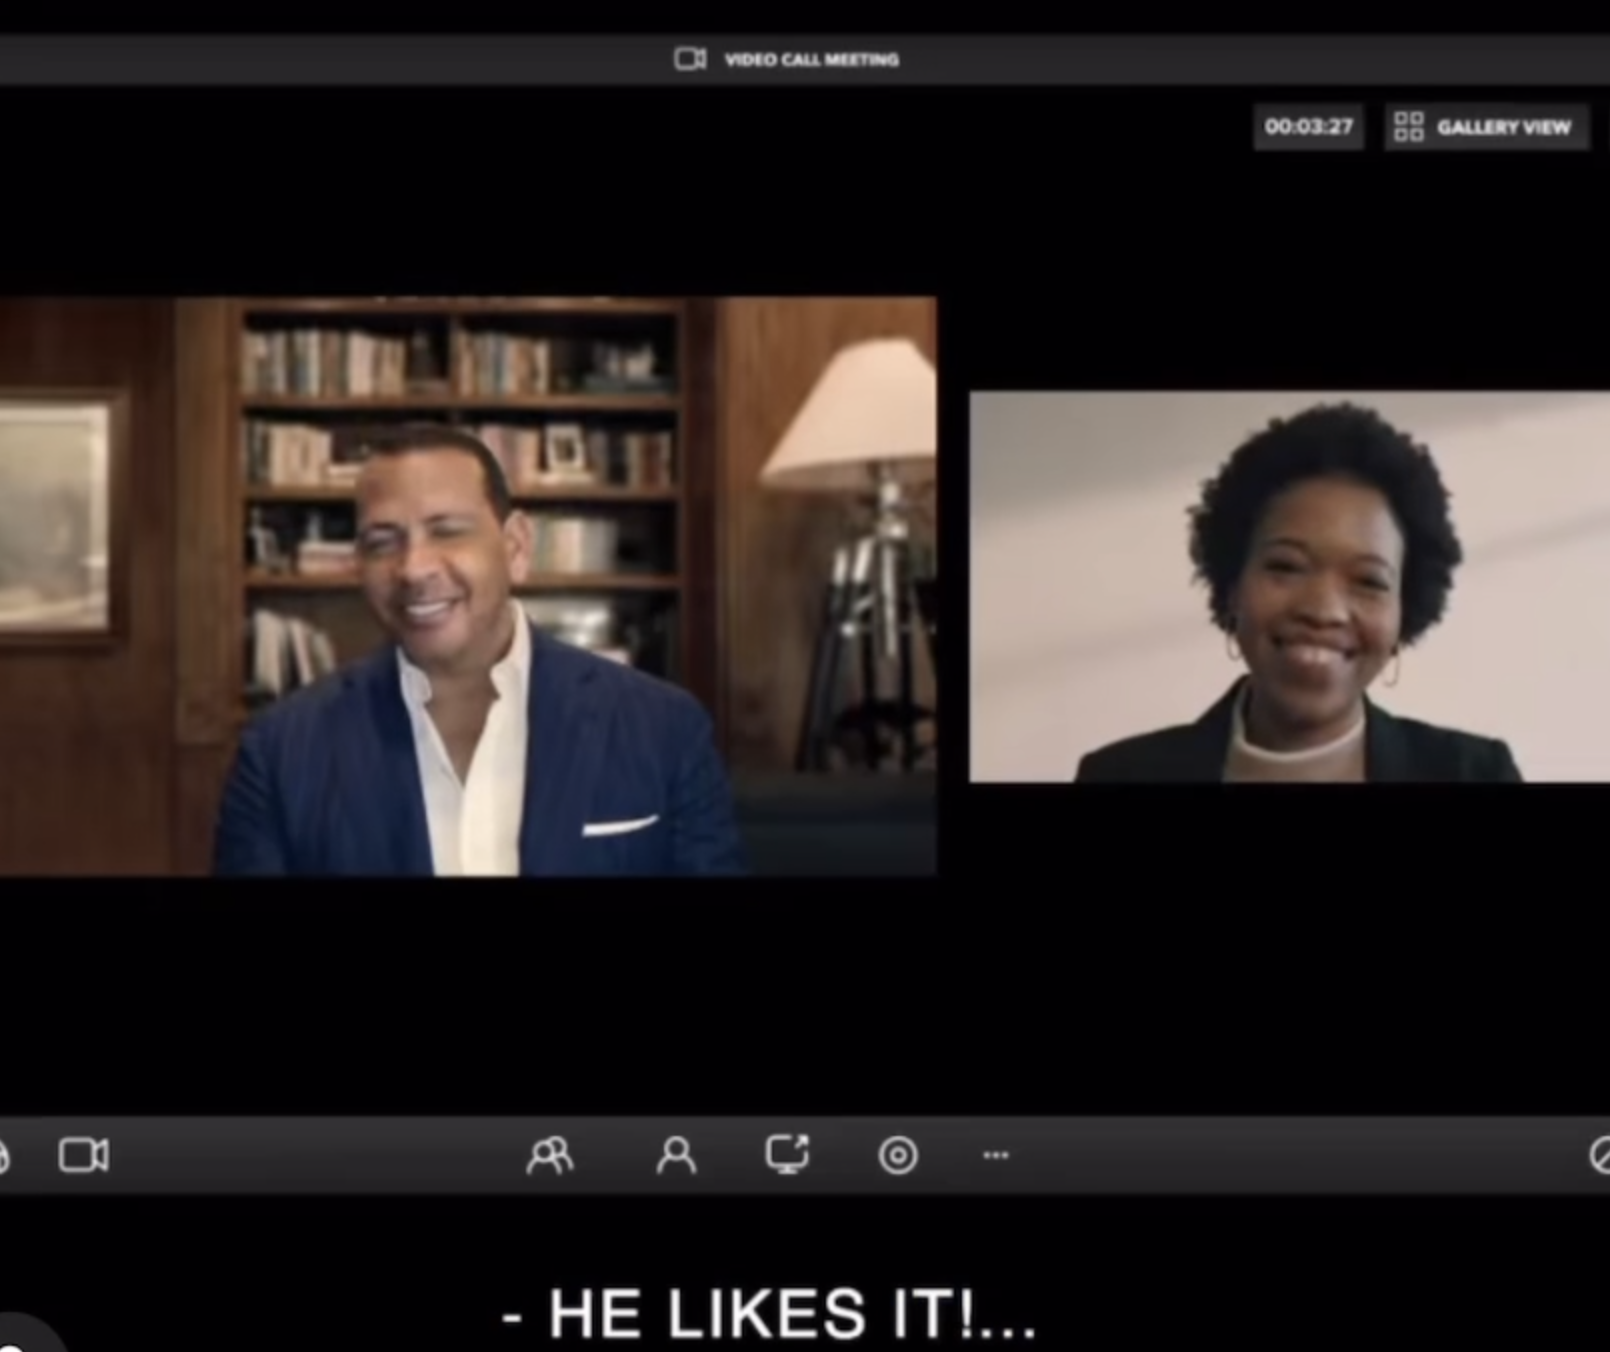 Krystal Voices QuickBooks Ad starring Alex Rodriguez!